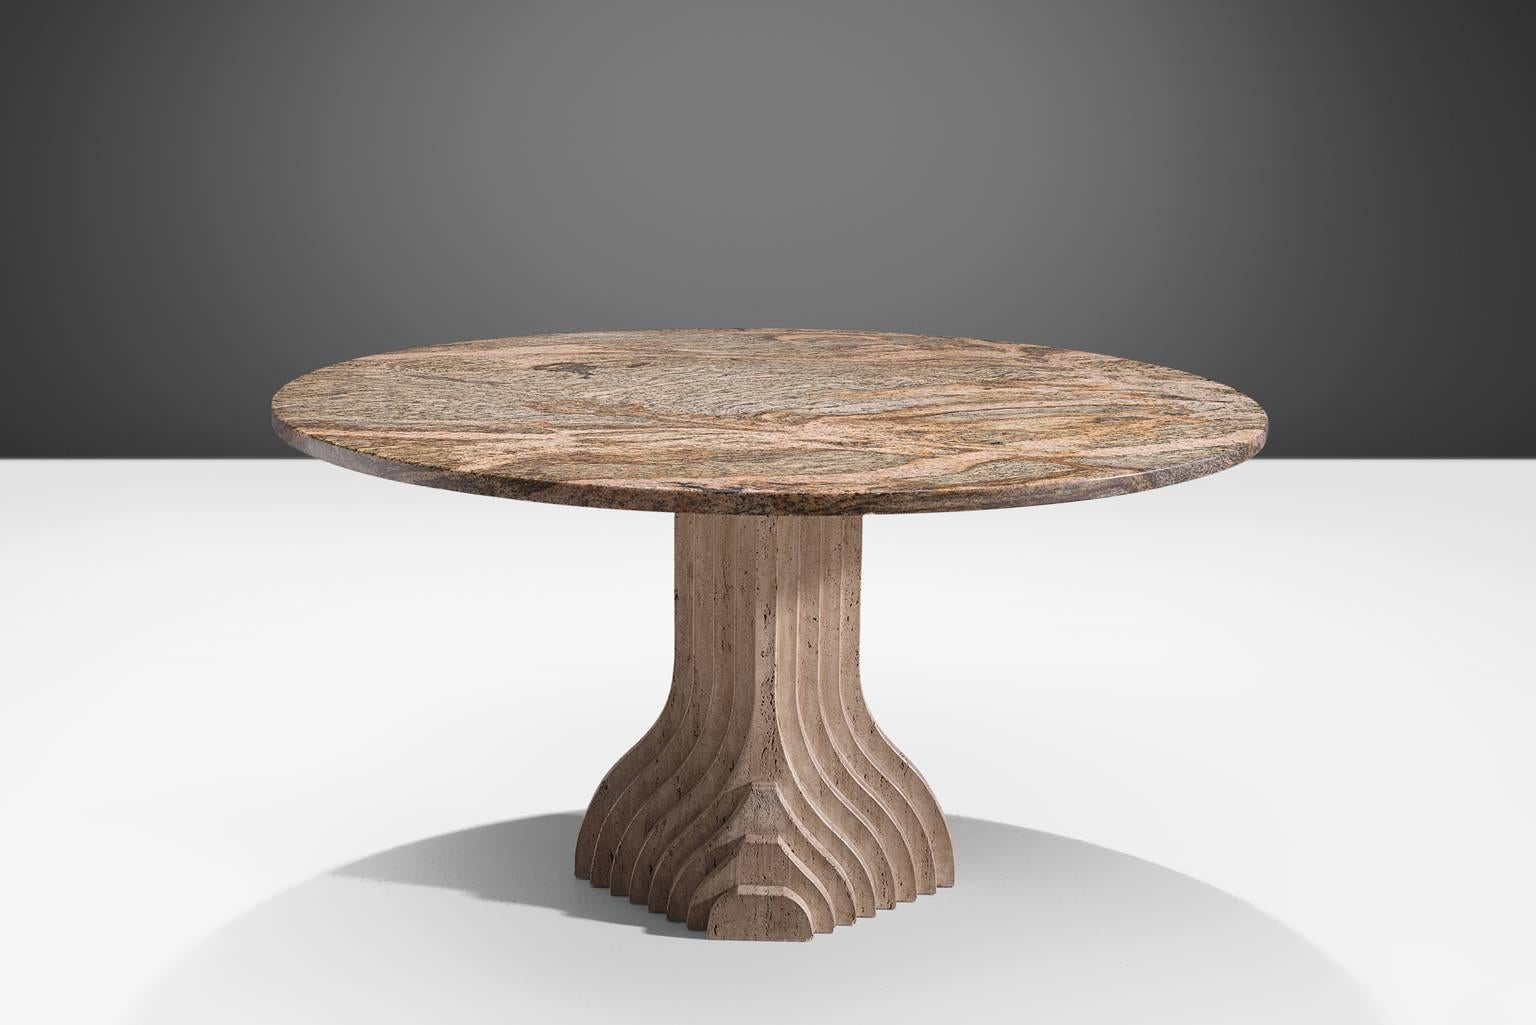 Architectural Centre Table In Travertine For Sale At 1stdibs